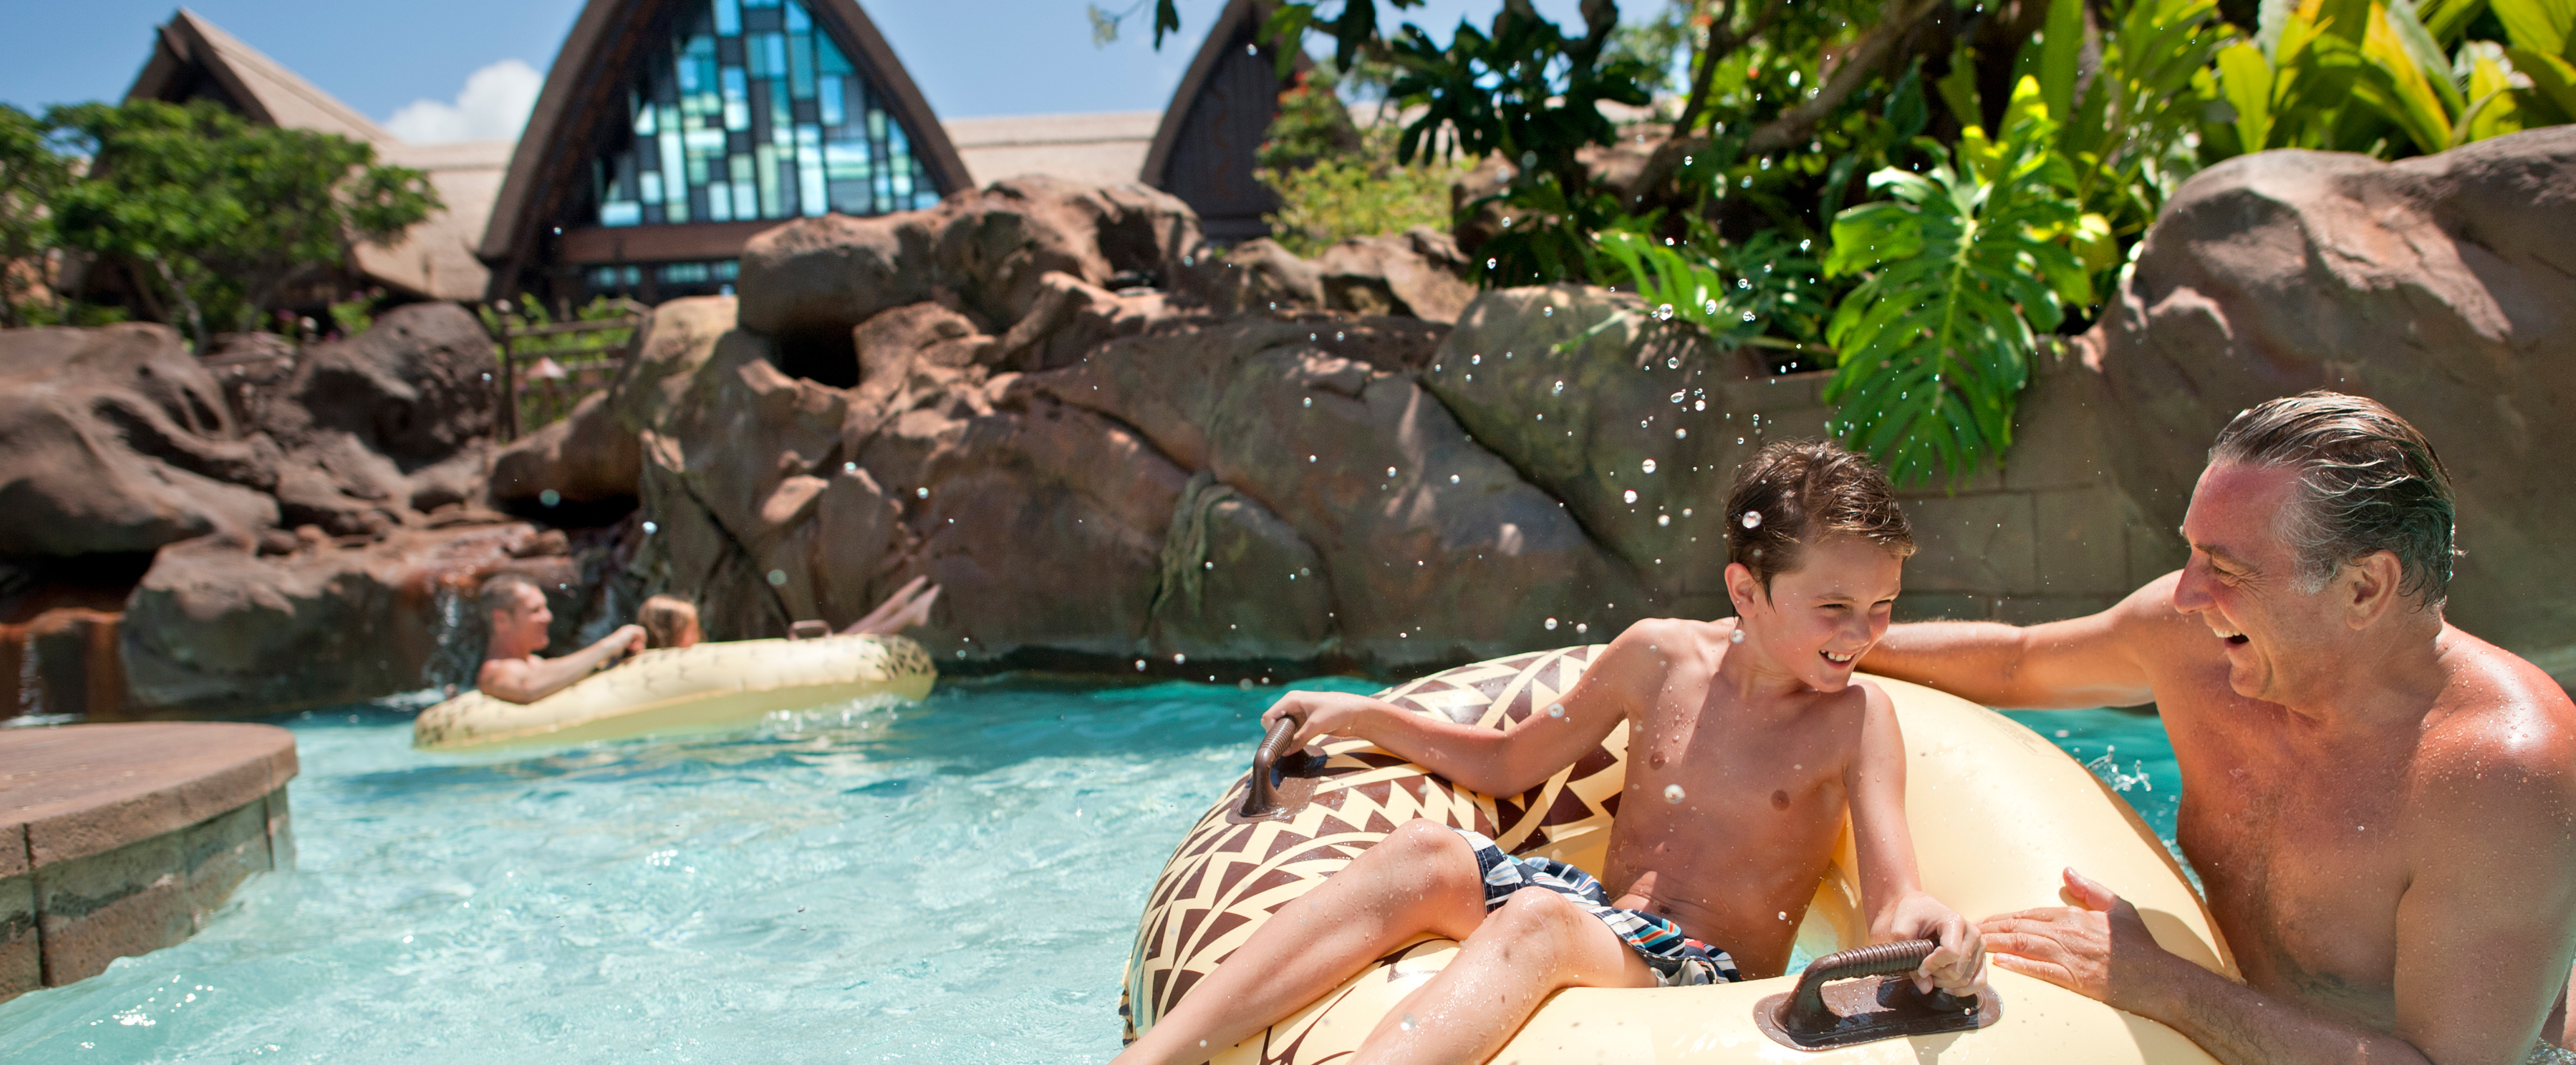 A young boy on an inner tube and his father play in a lazy river landscaped with rocks and tropical foliage